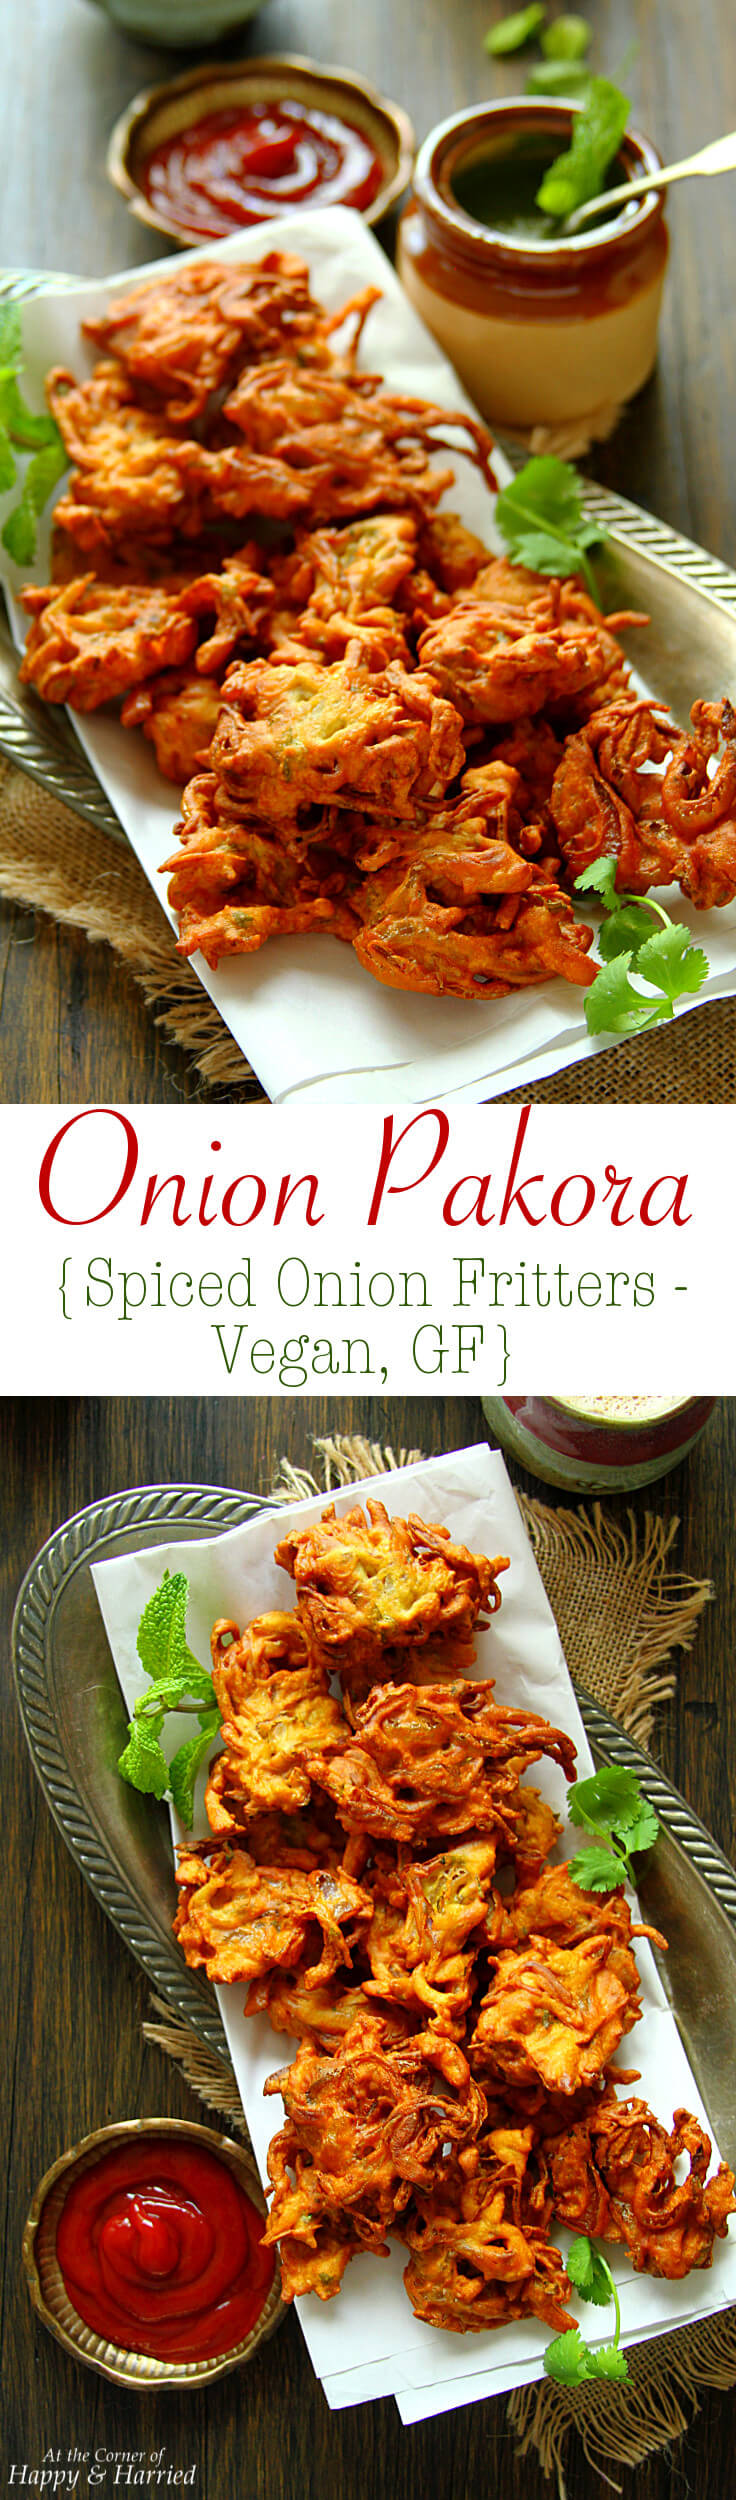 ONION PAKORA {SPICED ONION FRITTERS - VEGAN, GF} - HAPPY&HARRIED